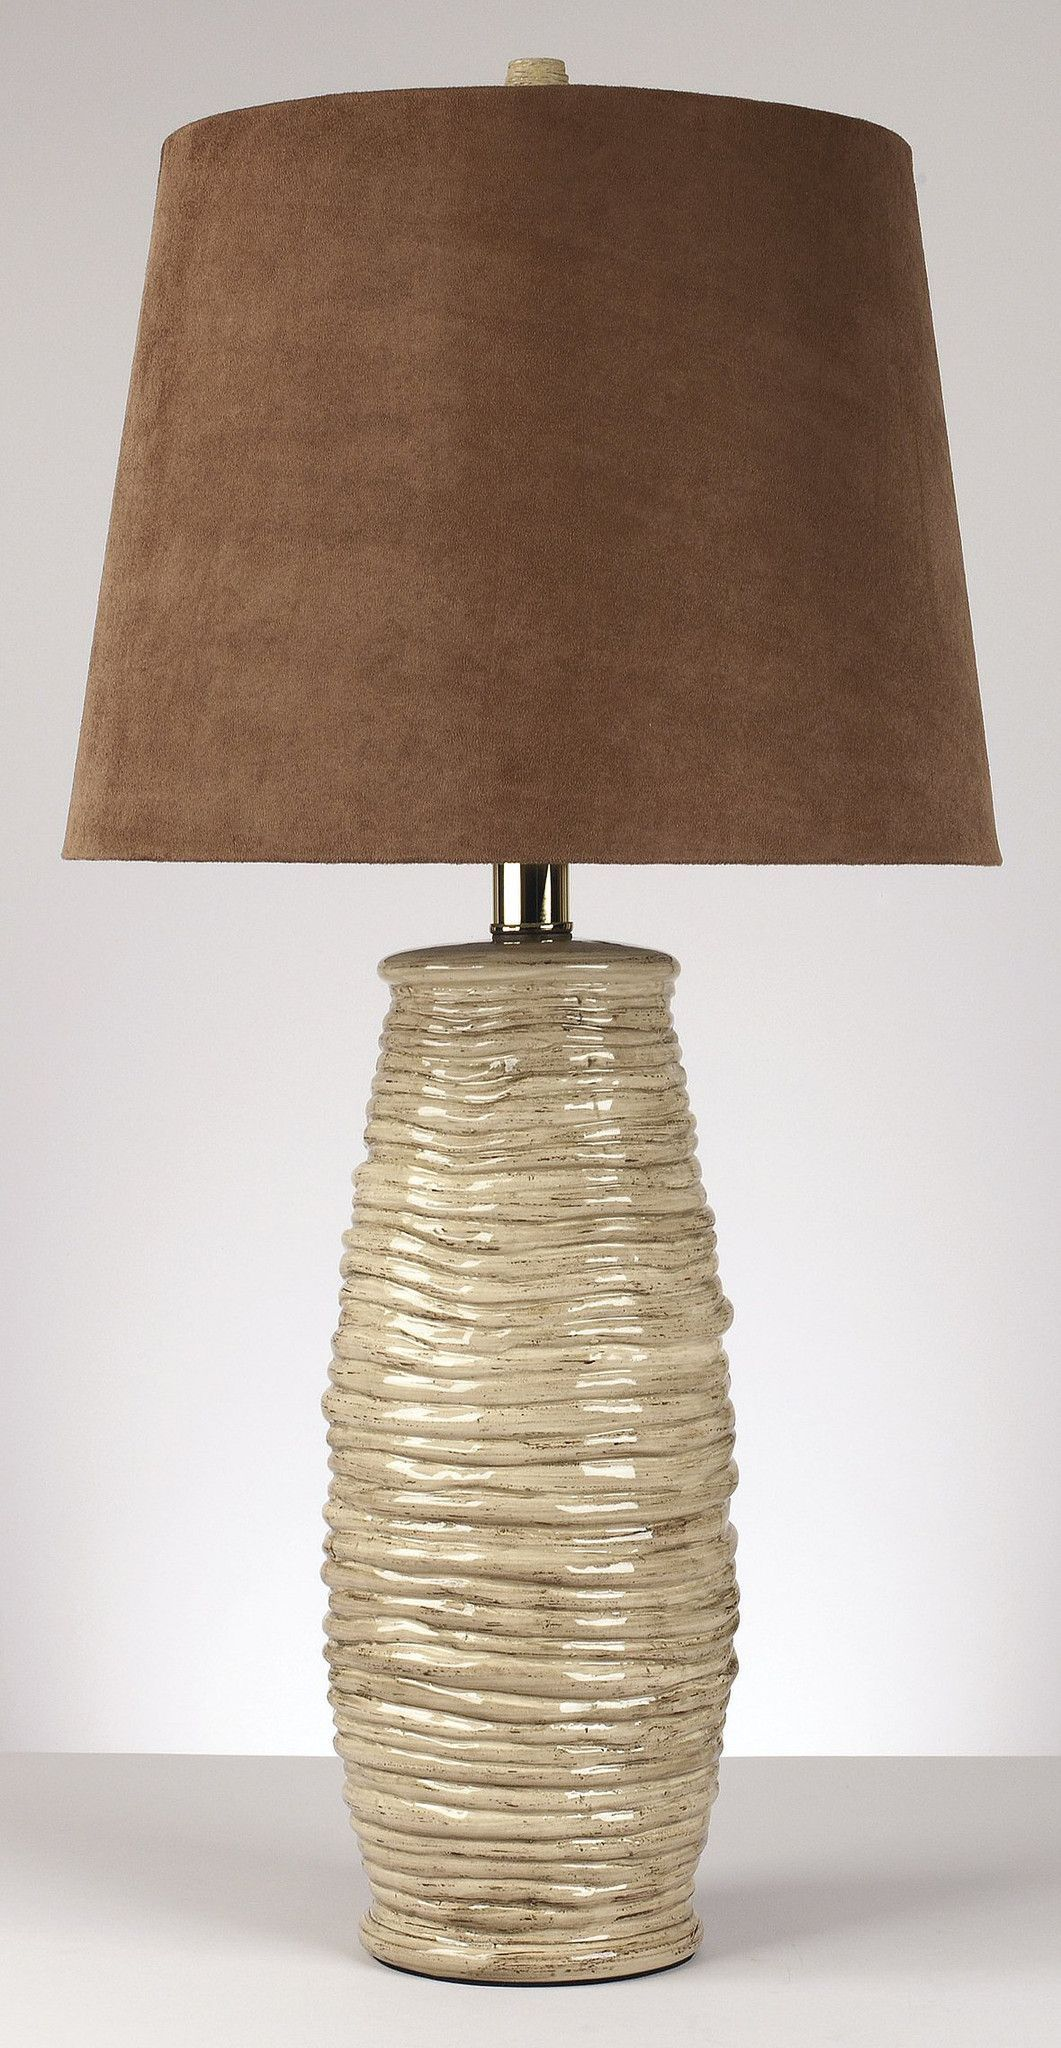 30 inchh haldis set of 2 table lamps textured beige ceramic a set of two textured beige ceramic table lamps topped with brown micro fiber shades beautiful textures marvel on the unique clash of textures with the aloadofball Choice Image